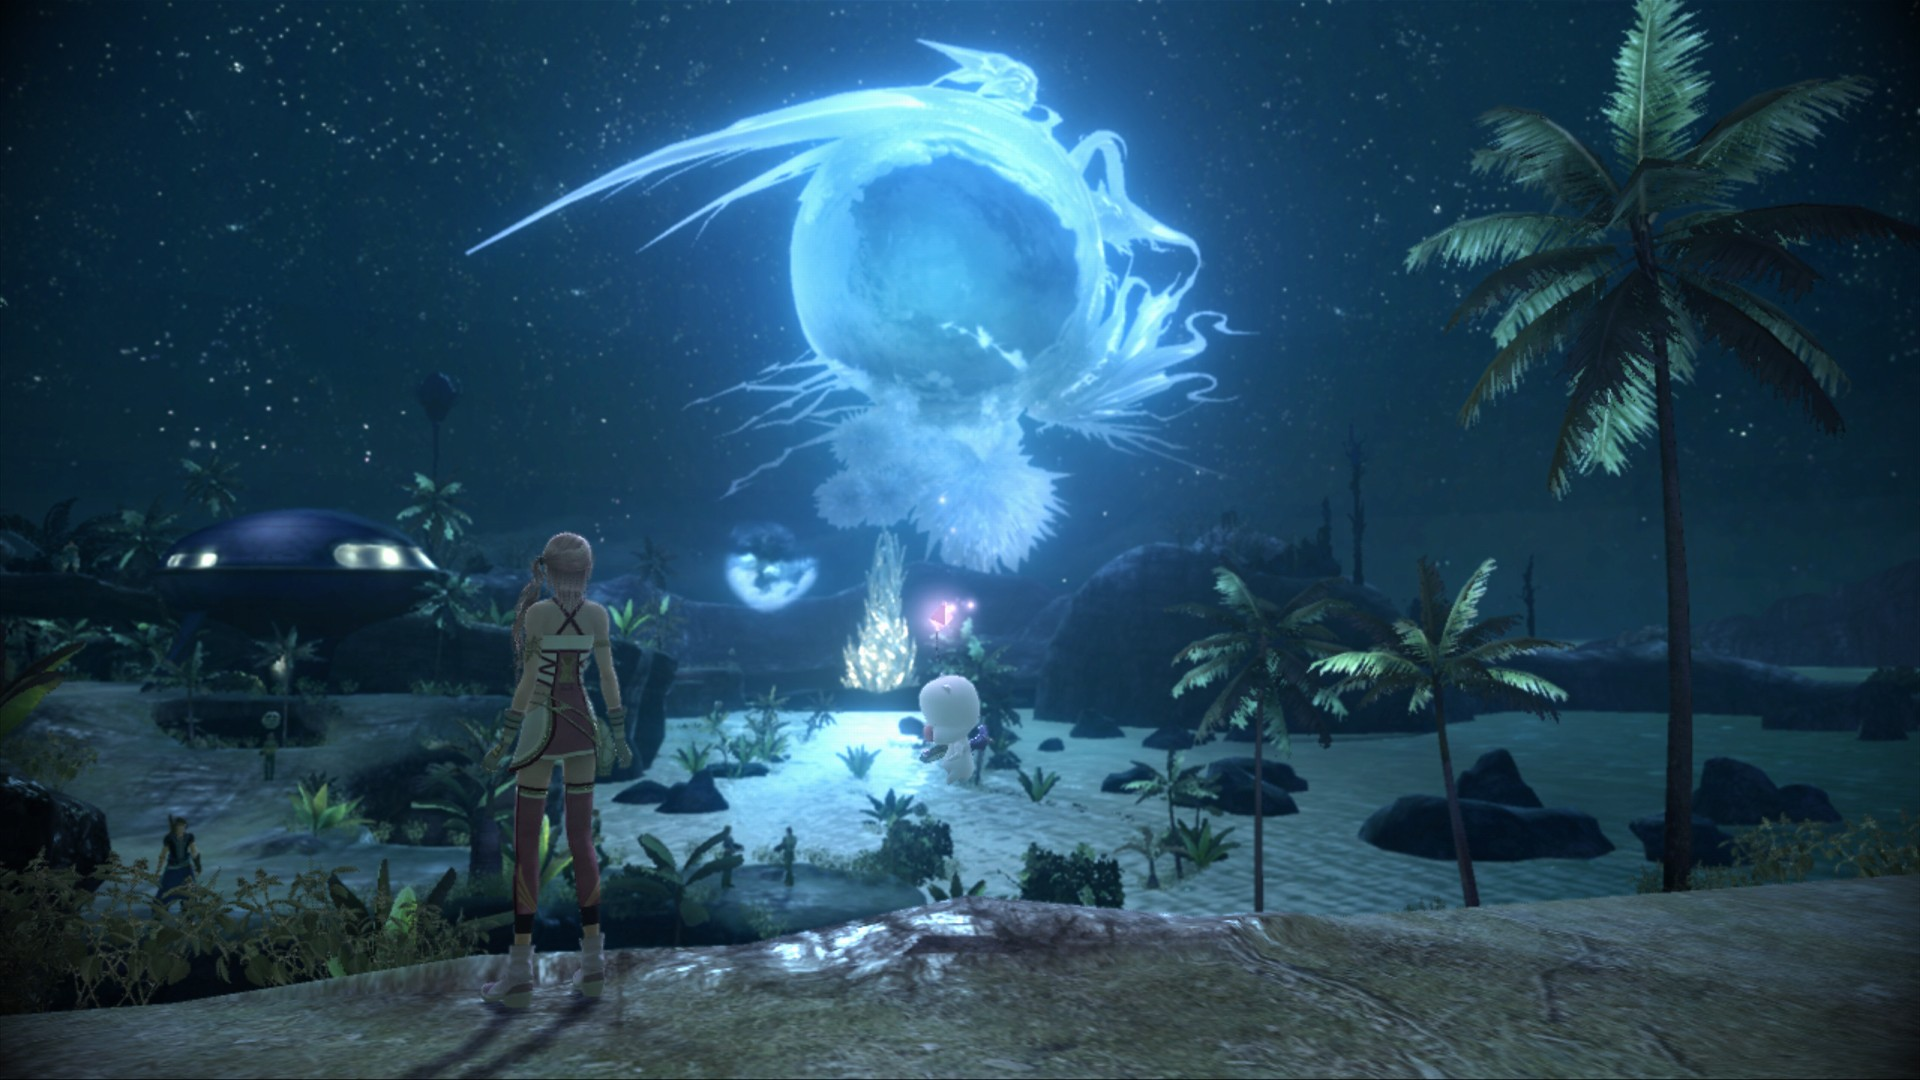 Final Fantasy Xiii 2 Review Rpg Site